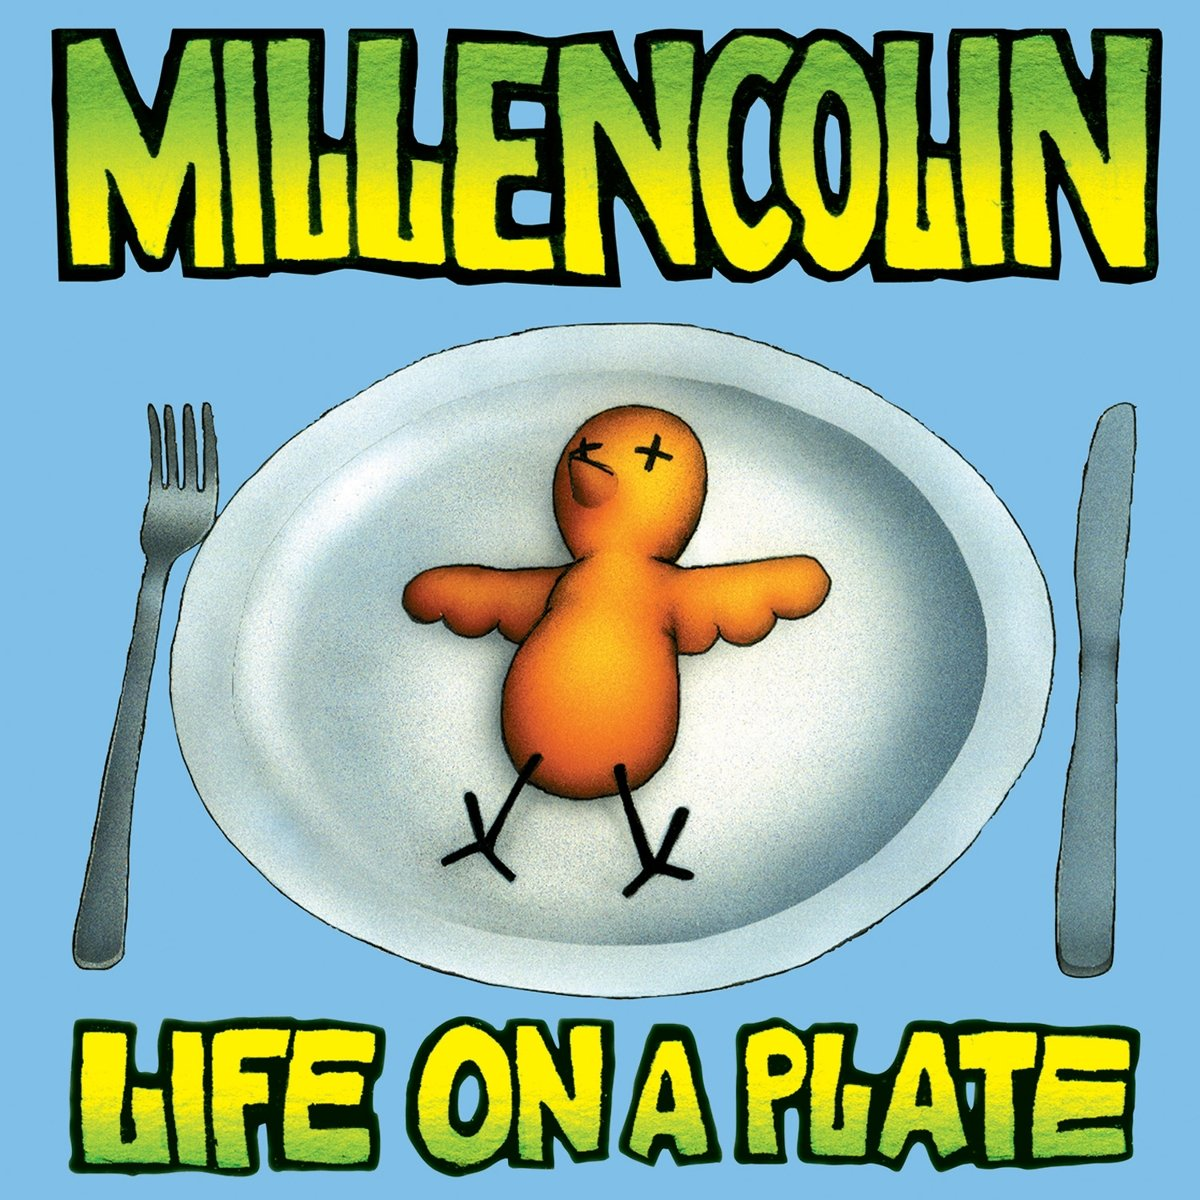 LIFE ON A PLATE [12 inch Analog]                                                                                                                                                                                                                                                    <span class=